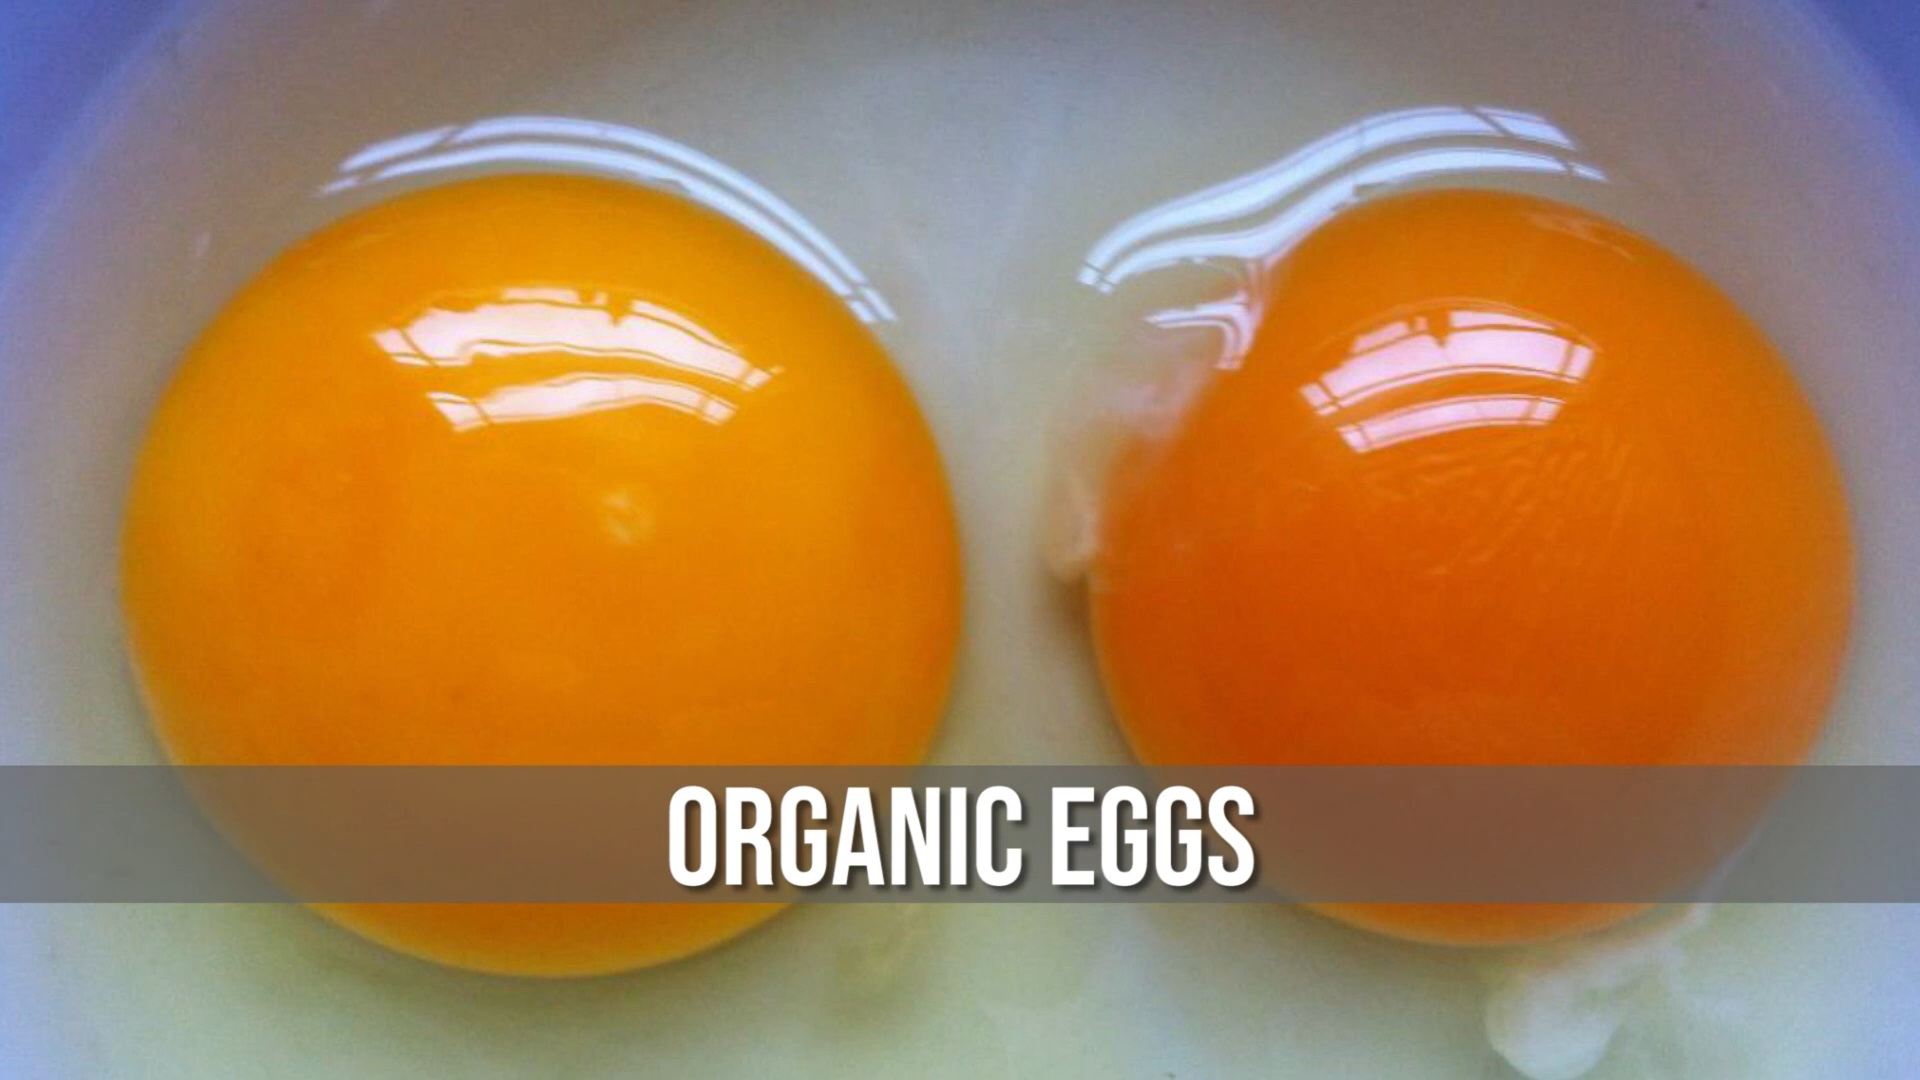 How we can identify Organic & Non-Organic Eggs from Yolk Color